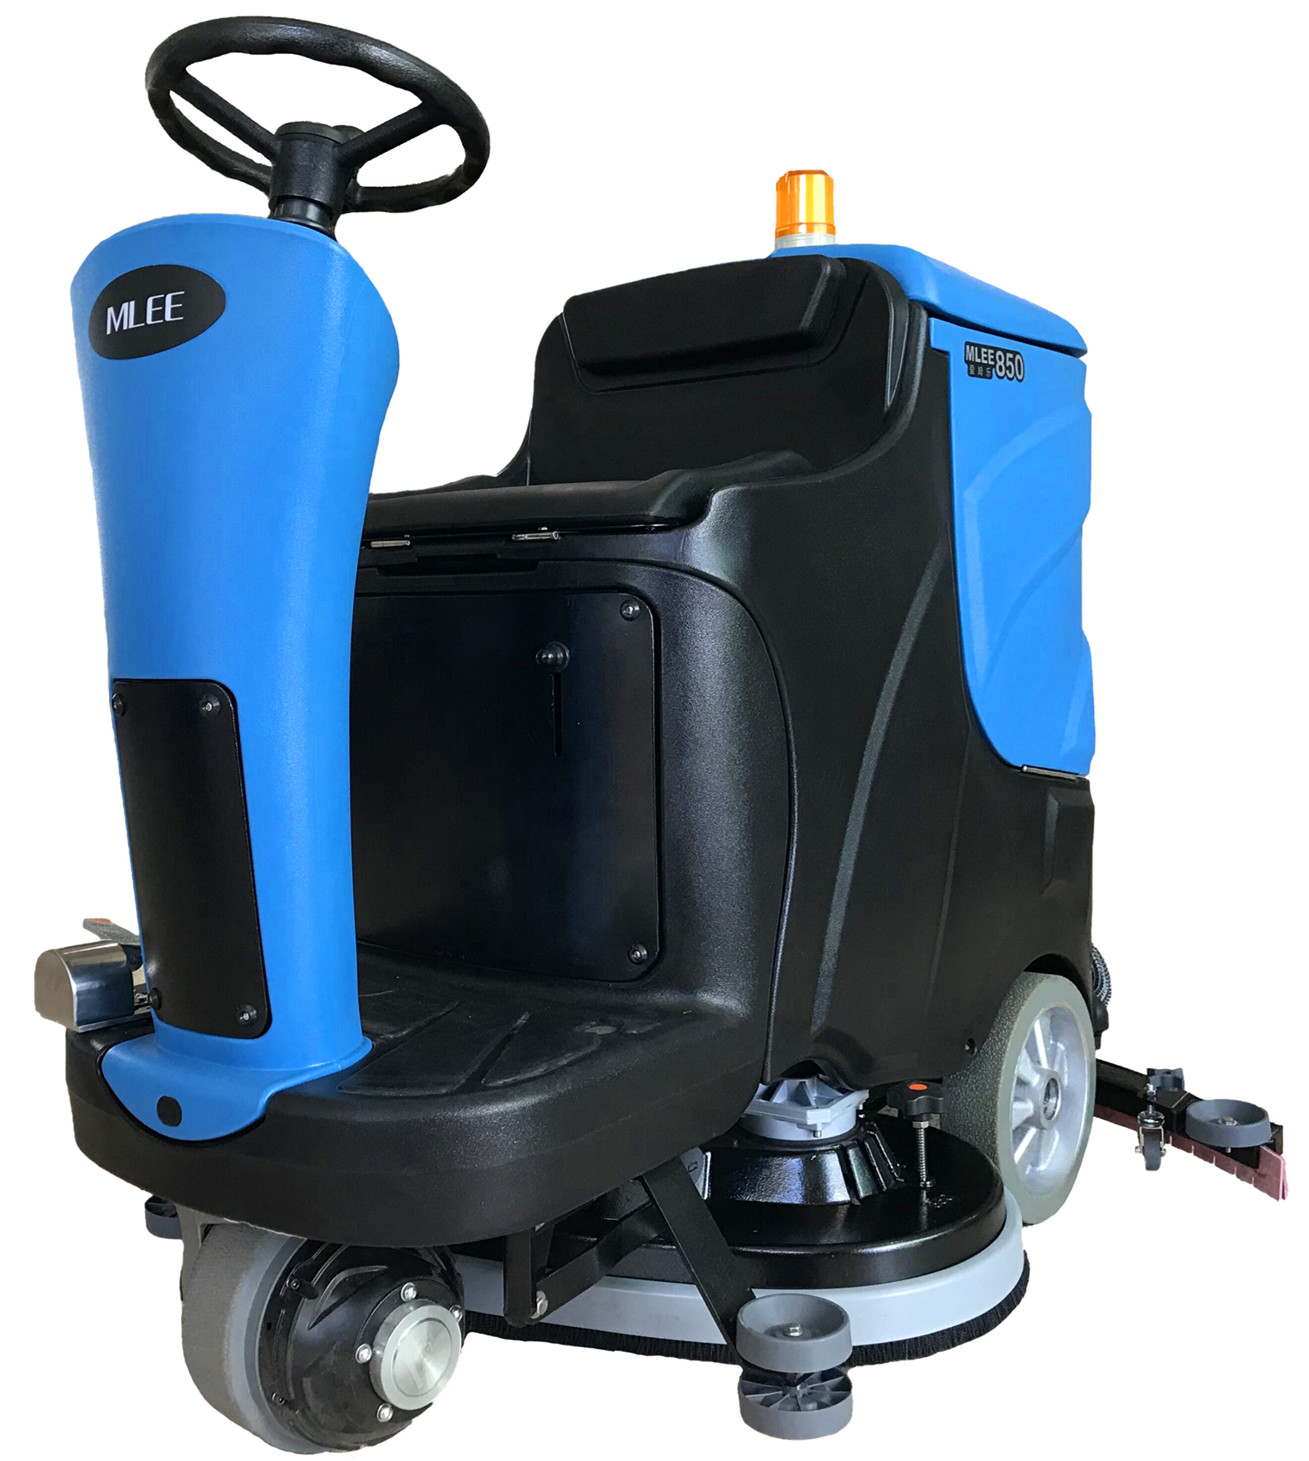 Mlee 850bt Wet Dry Driving Automatic